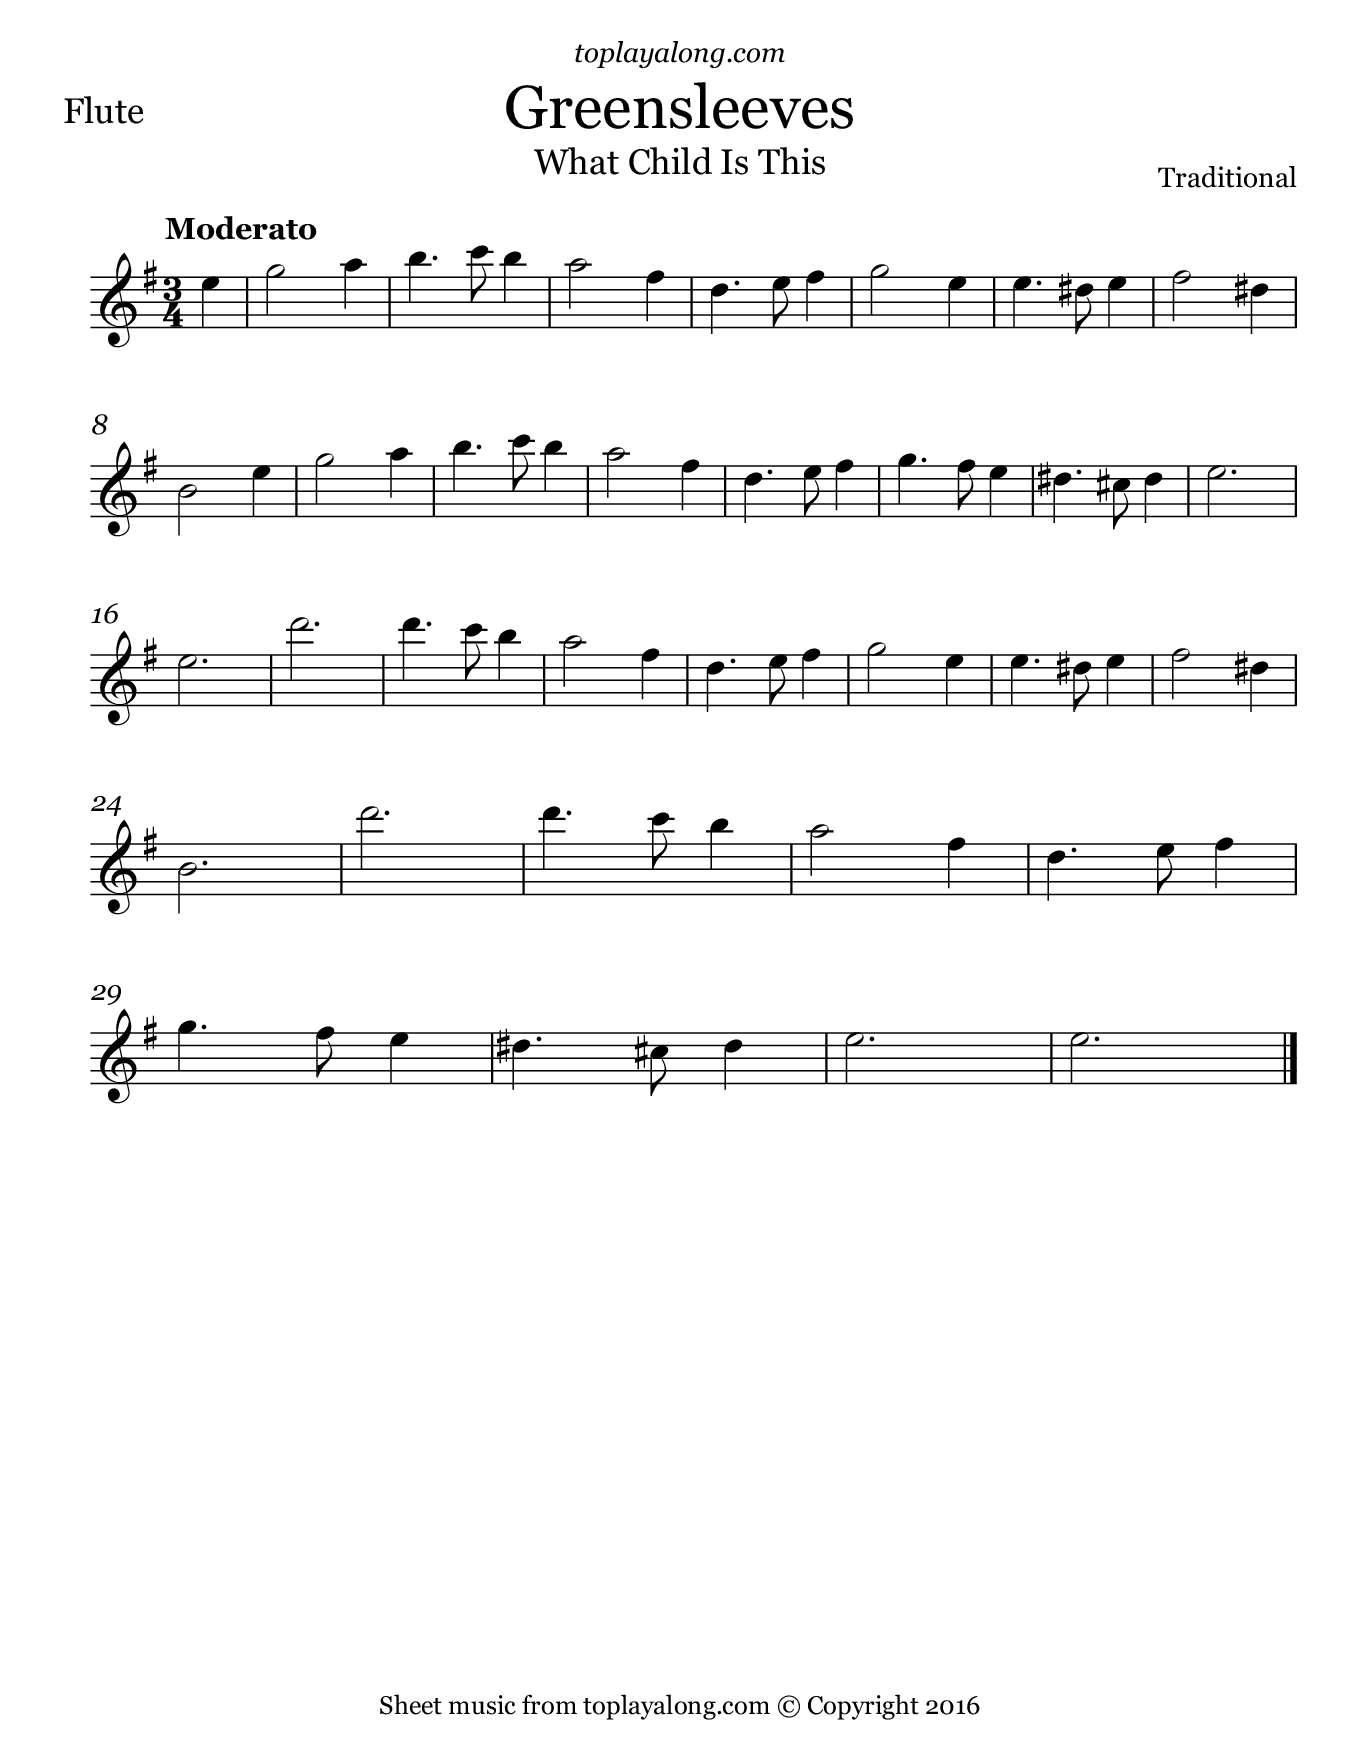 Greensleeves. Sheet music for Flute, page 1.